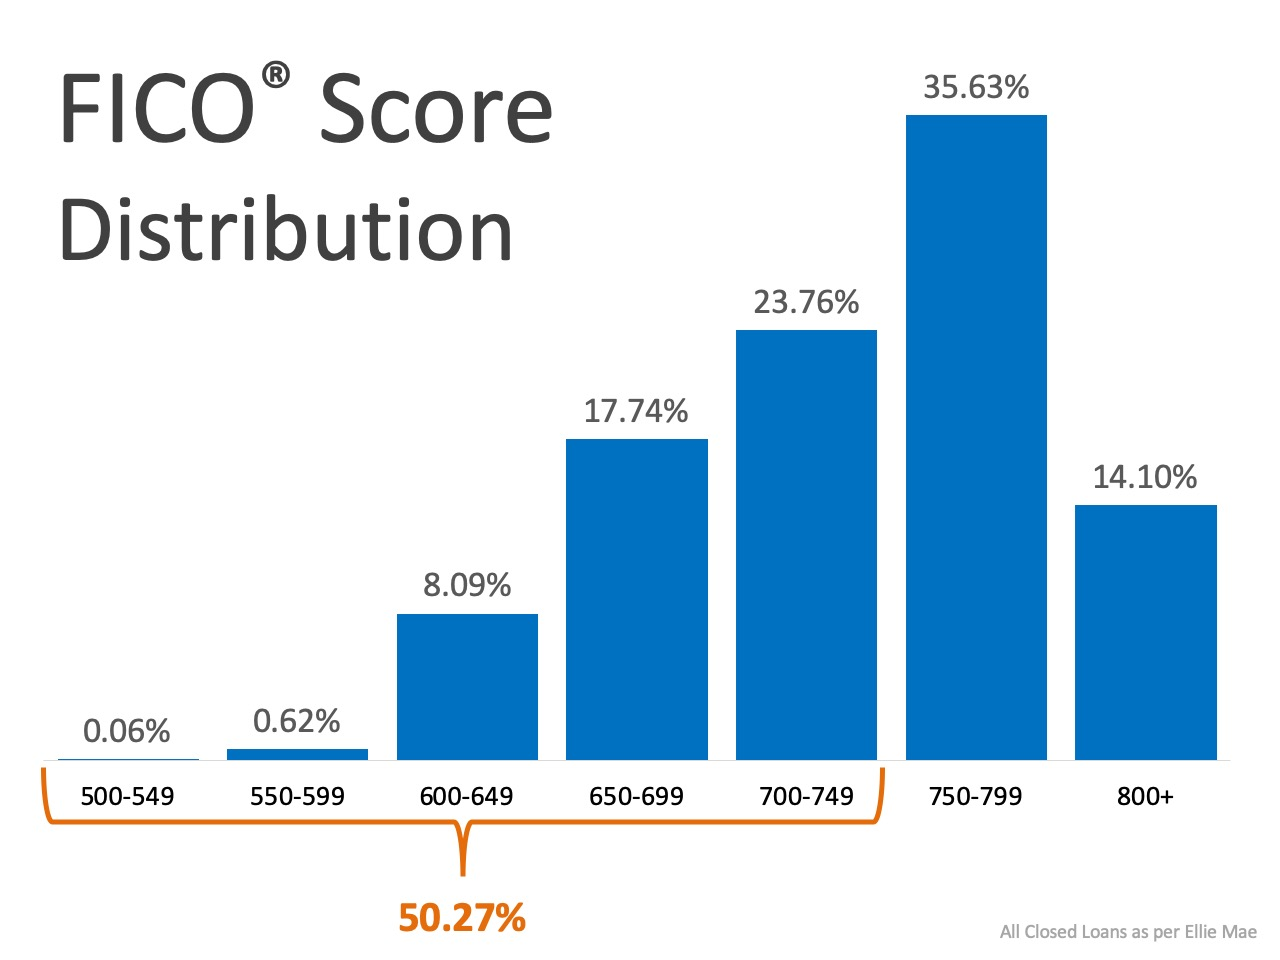 What FICO Score Do You Need to Qualify for a Mortgage